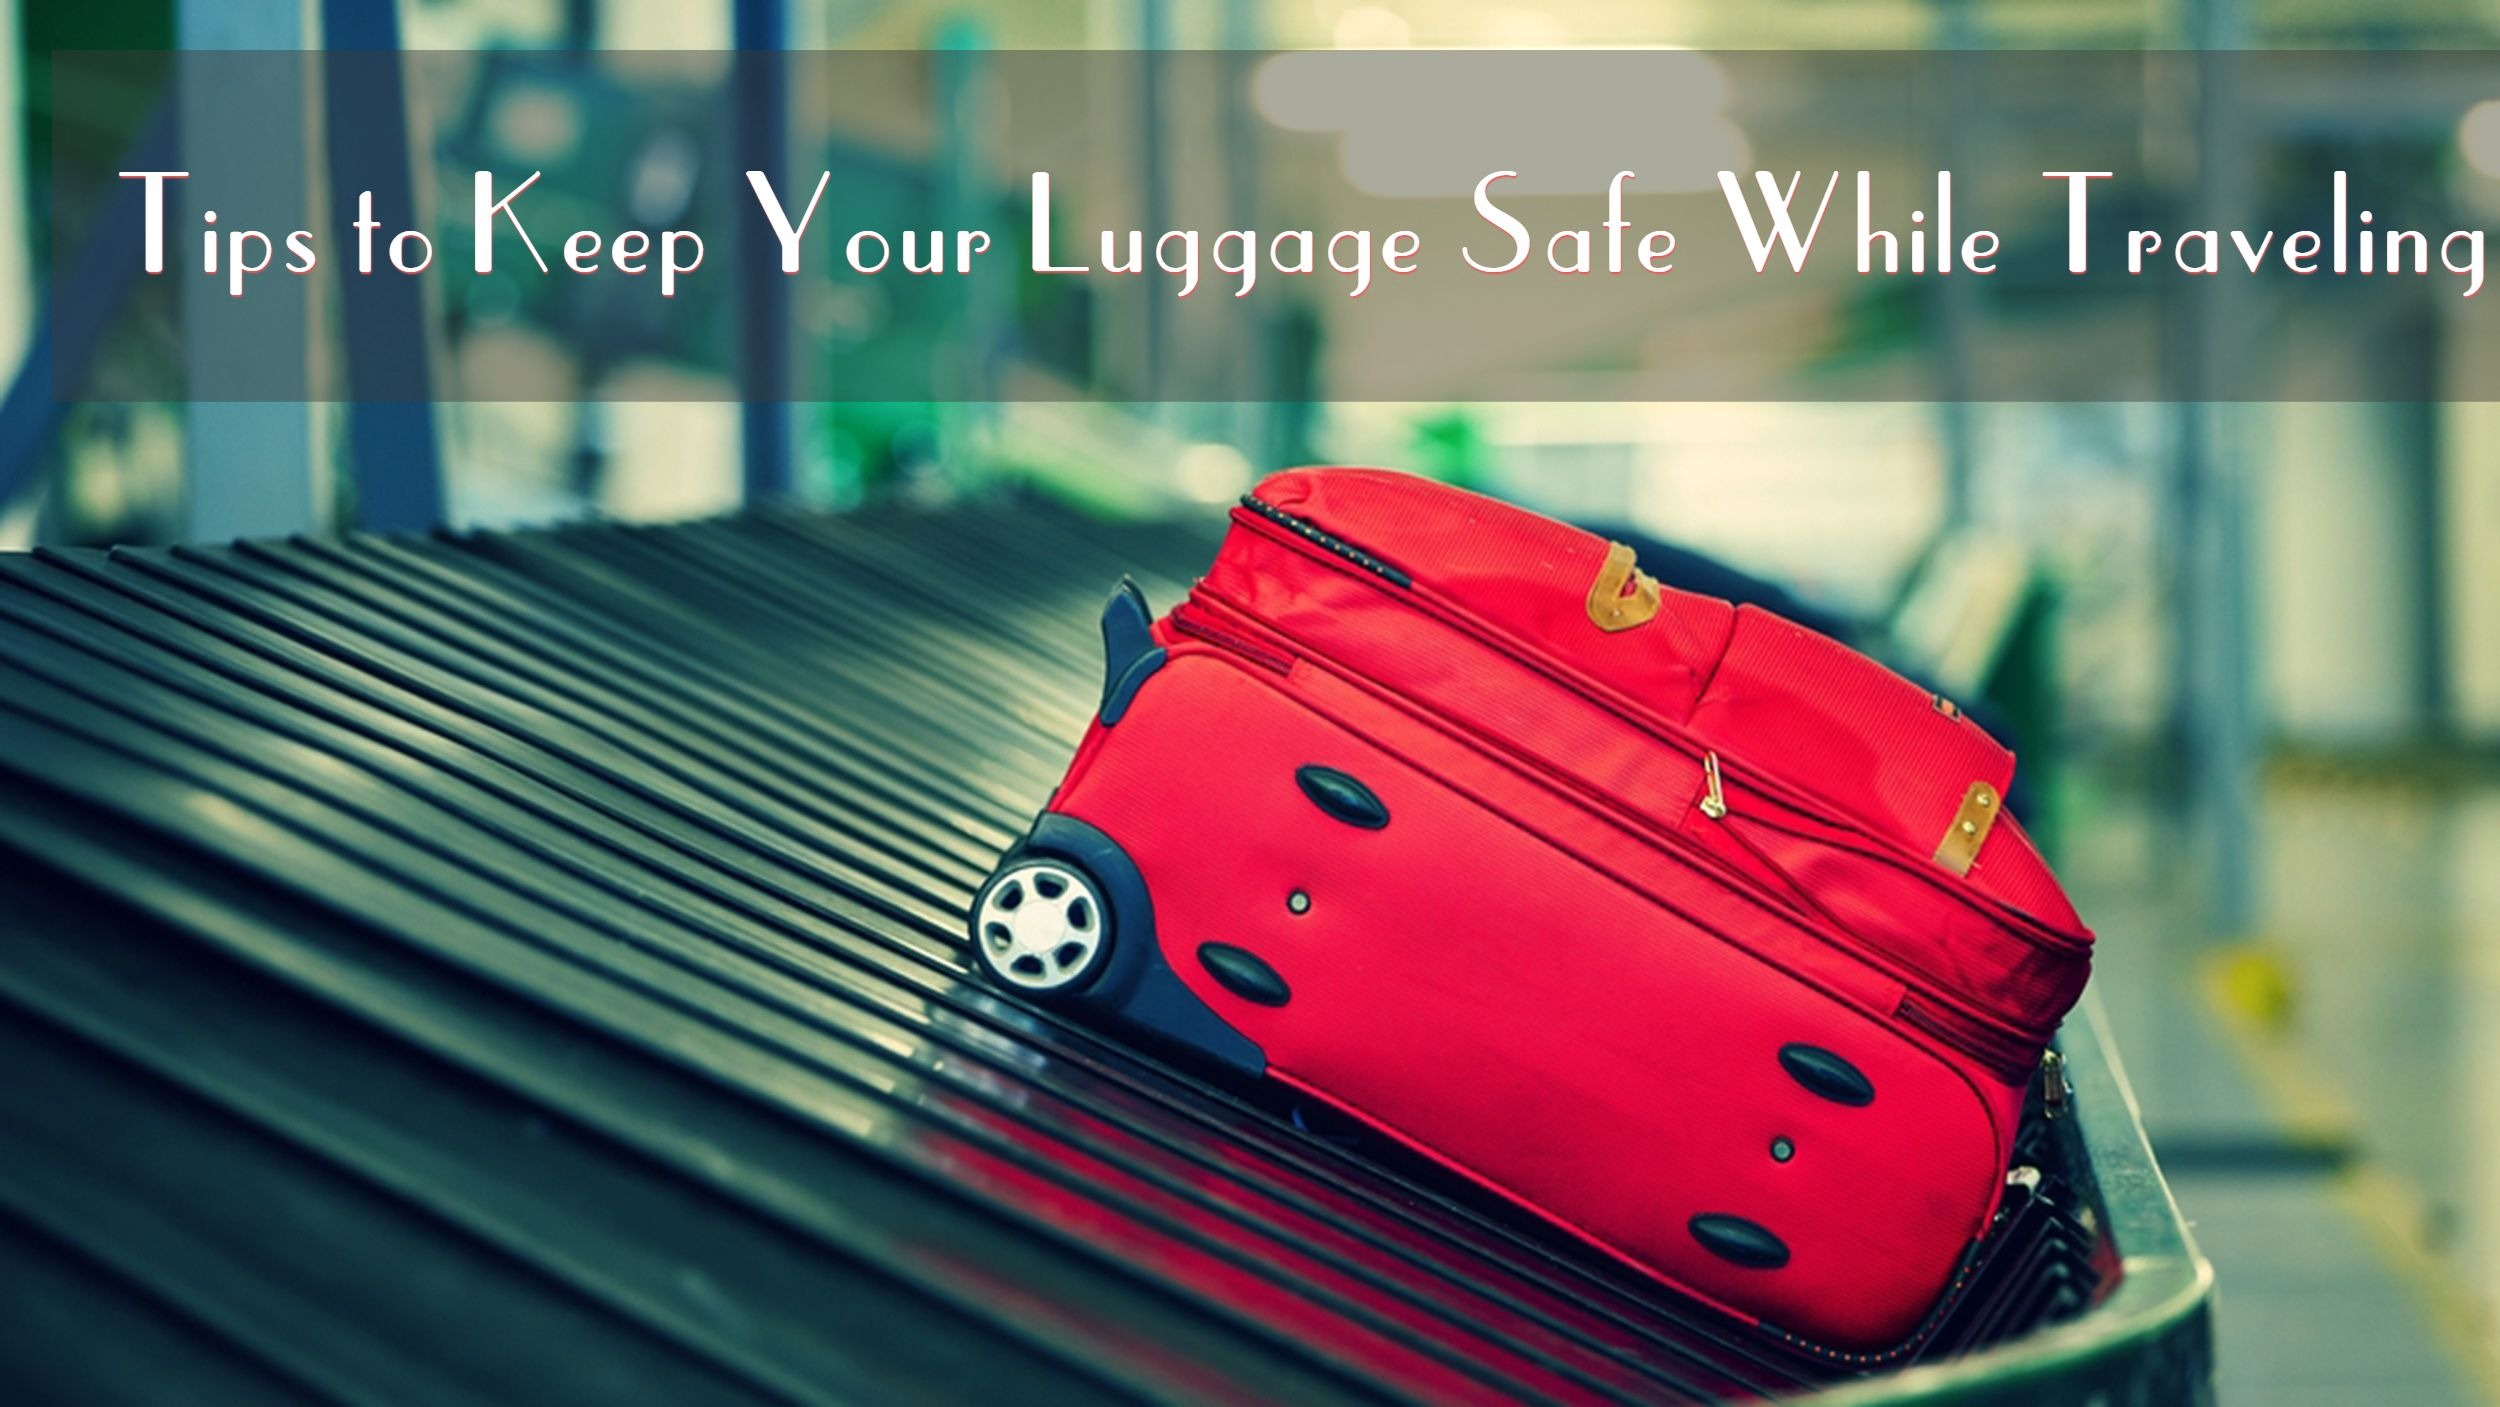 There have been cases when luggage of travelers have been misplaced from hotel lobbies, buses, train and nowadays, even from flights. To ensure you have your stuff protected, follow these tips to keep luggage safe while traveling.